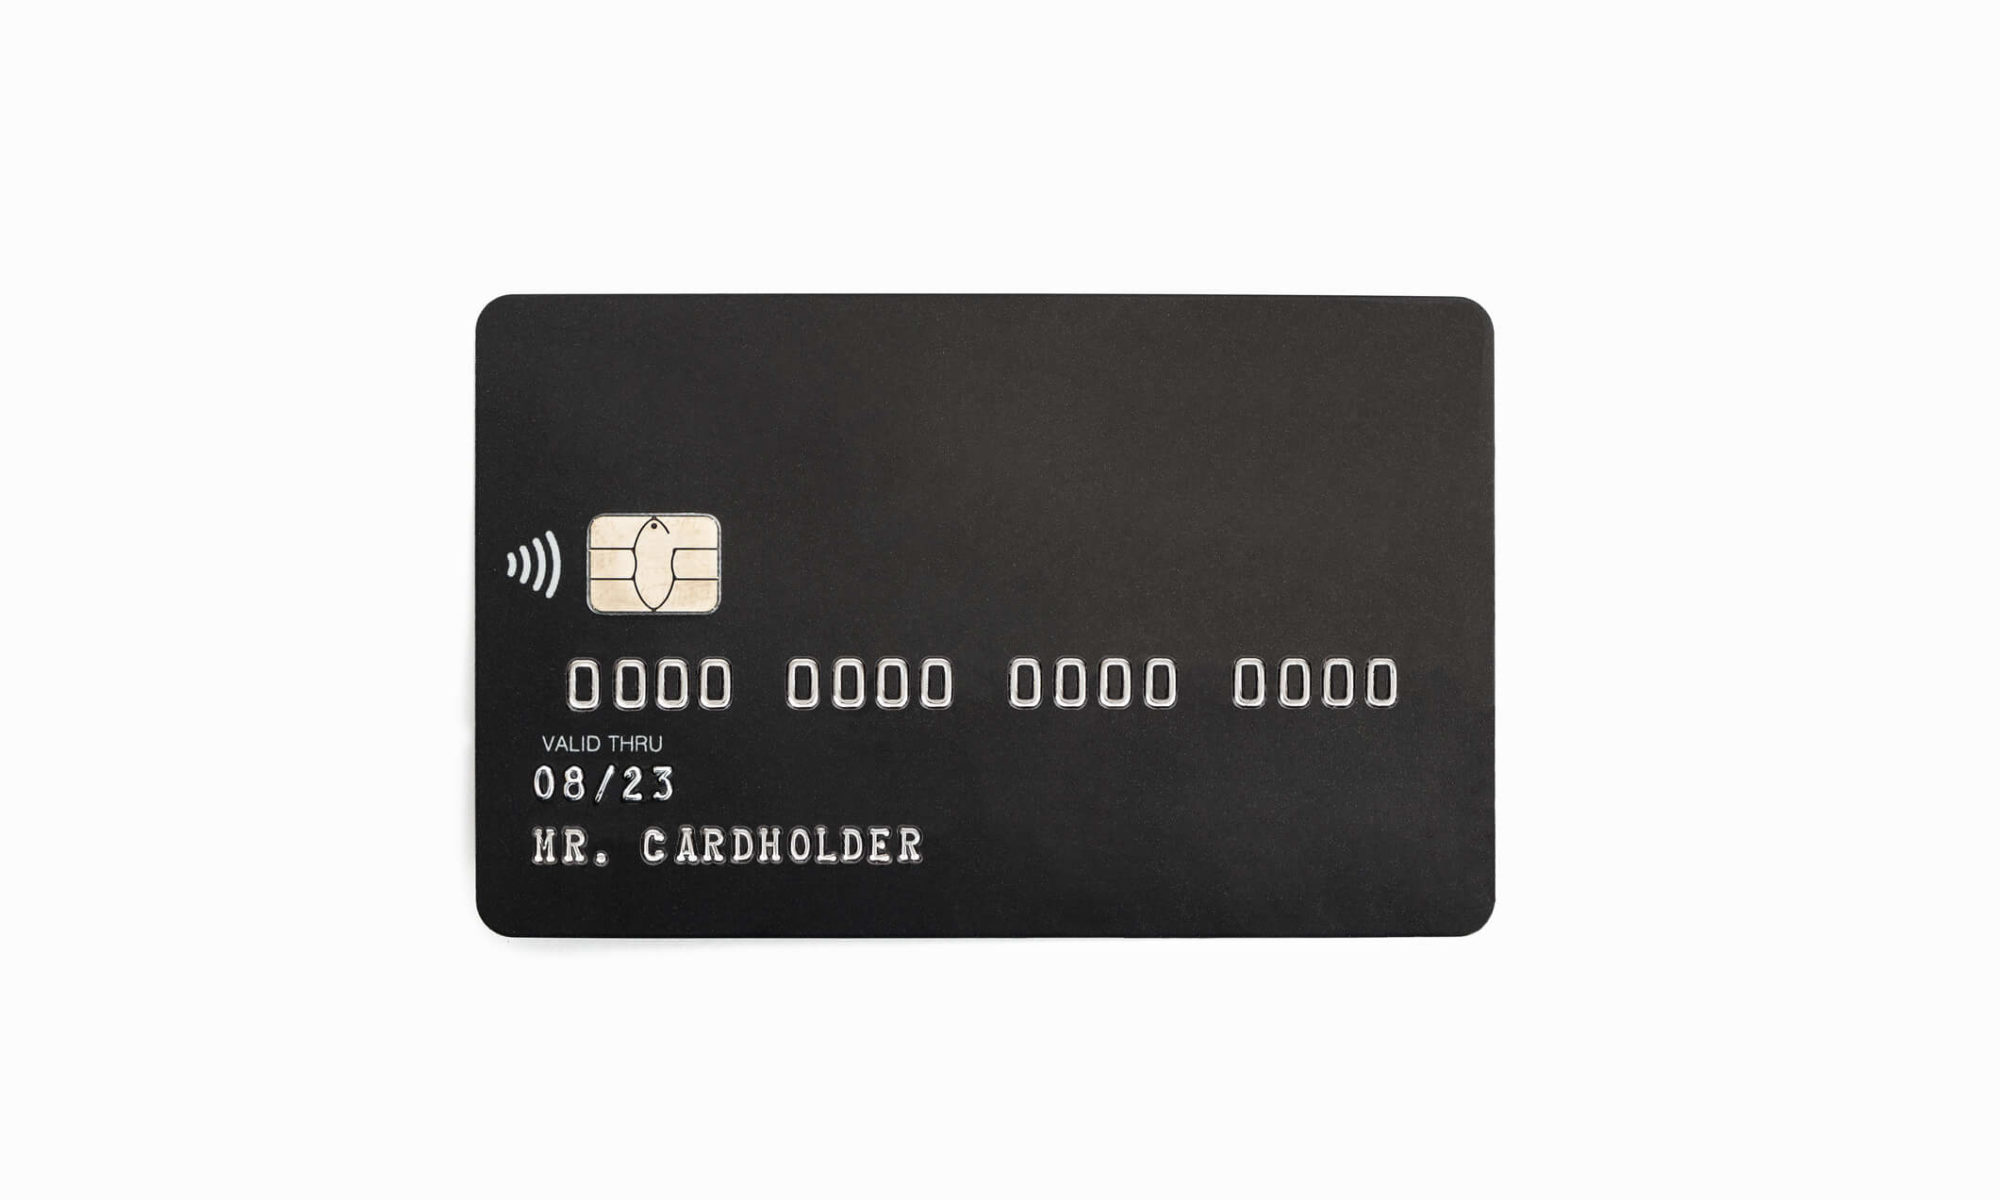 emv-chip-credit-card-y2payments